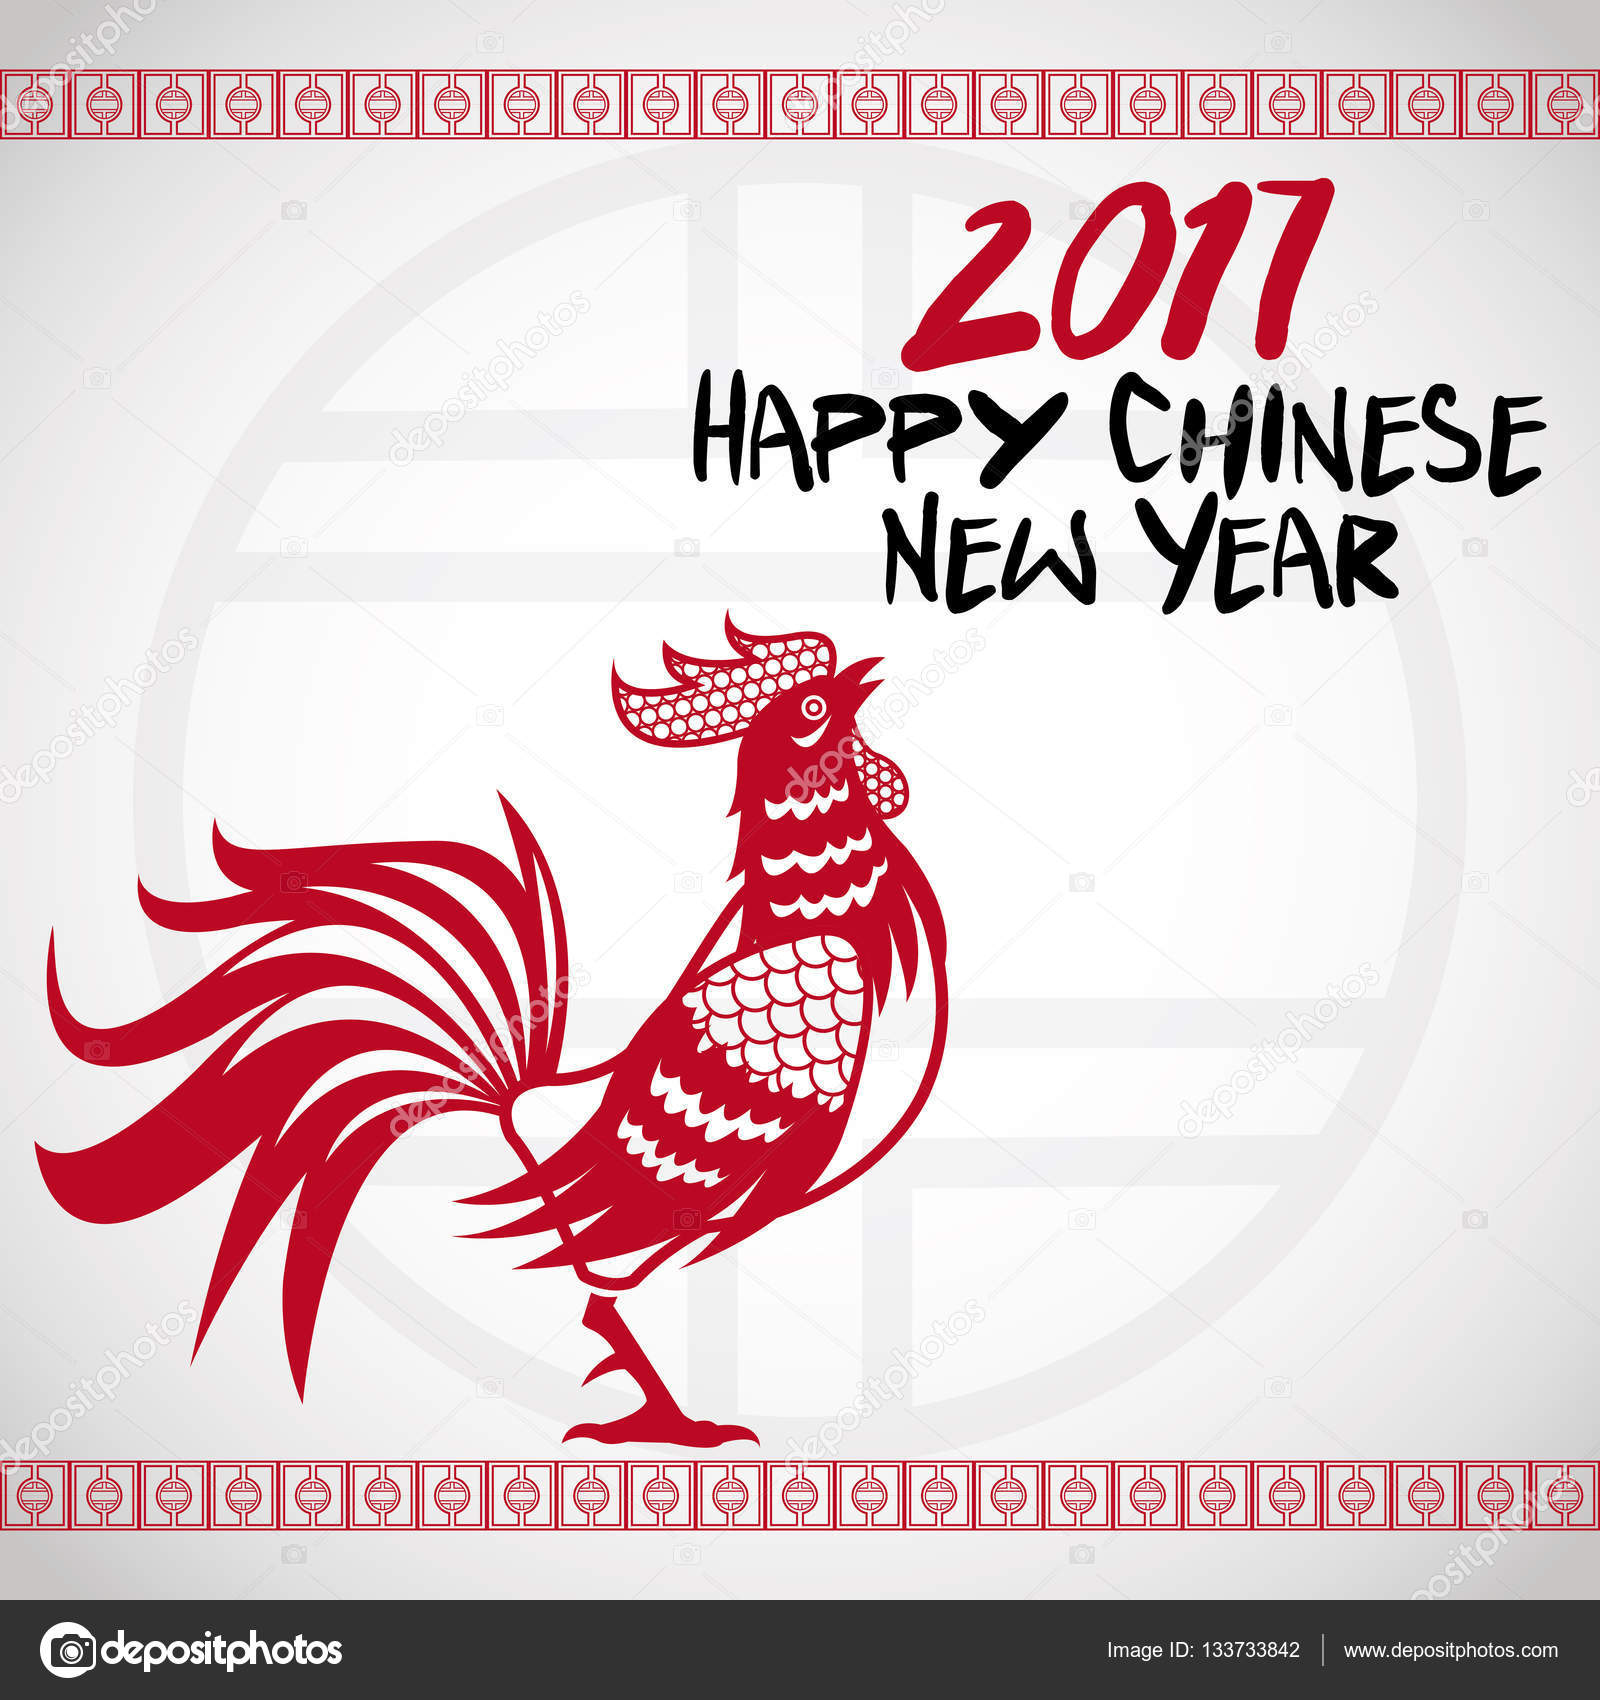 New year 2017 greeting pictures year of rooster happy chinese new year - Greeting Card Rooster Chinese New Year 2017 Stock Vector 133733842